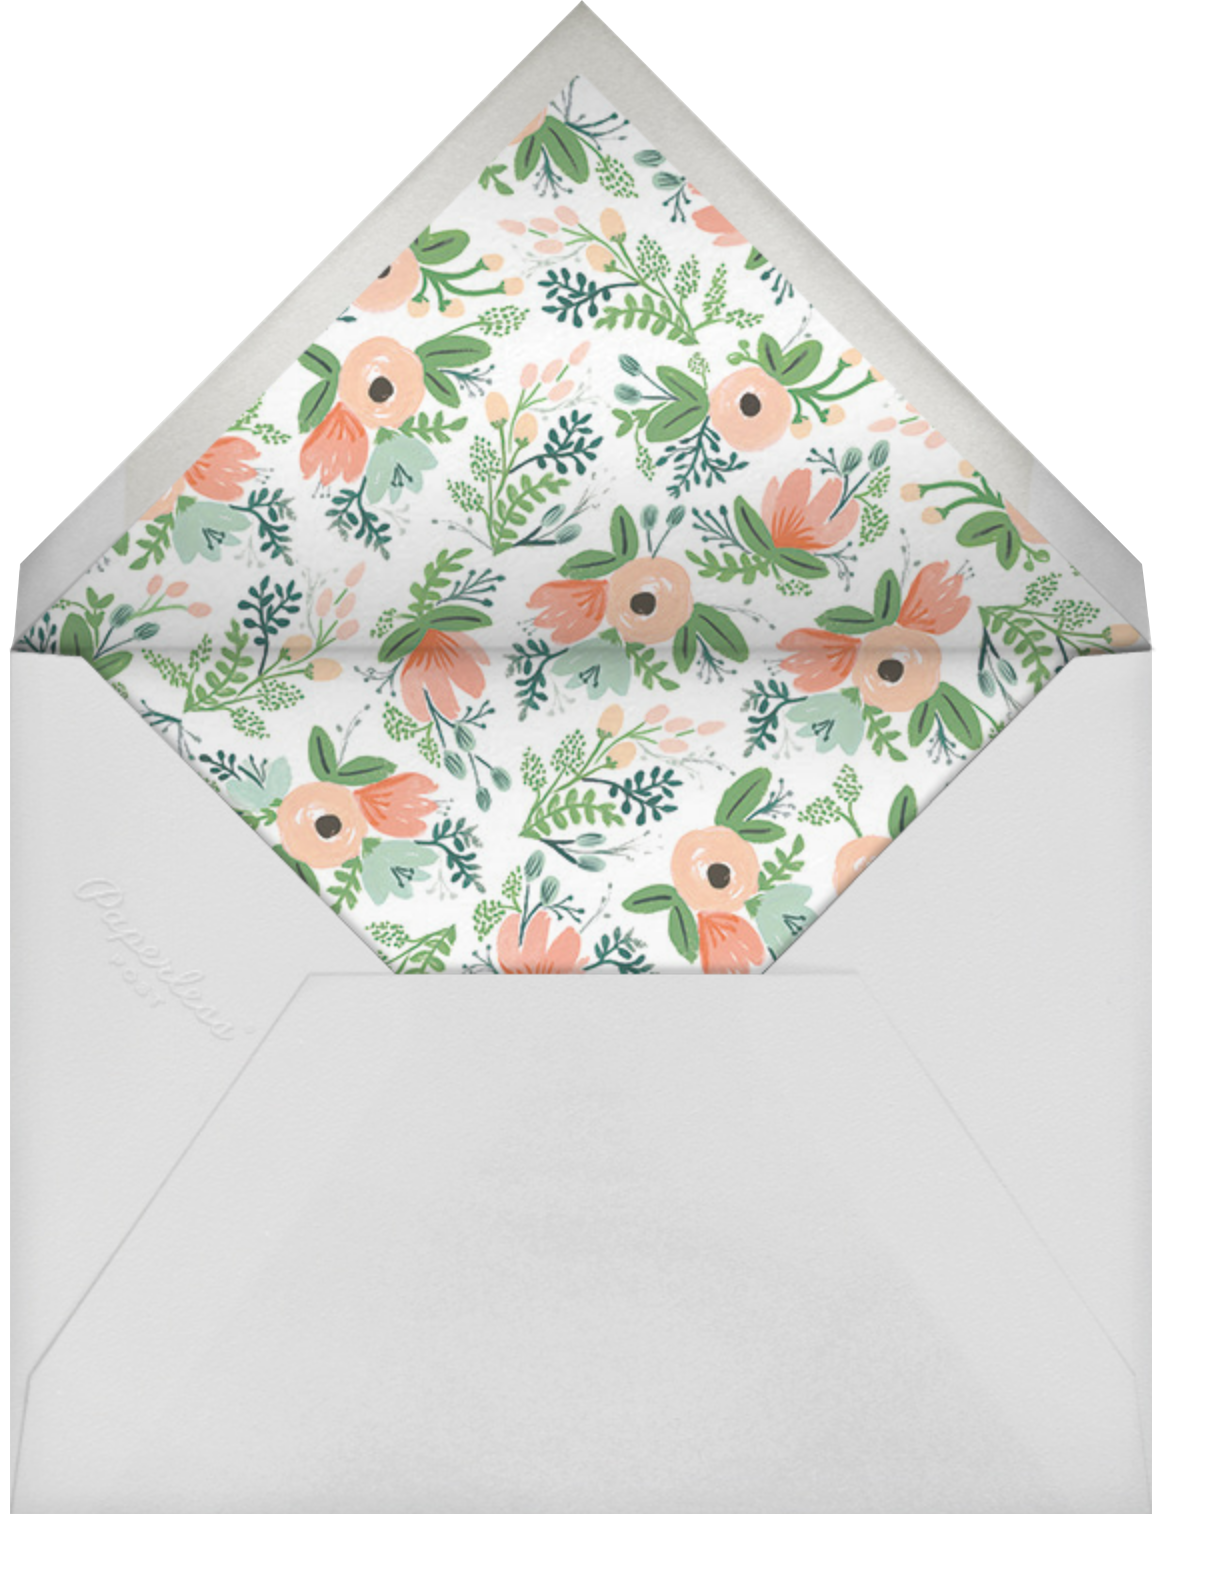 Greatest Mom Certificate - Rifle Paper Co. - Mother's Day - envelope back